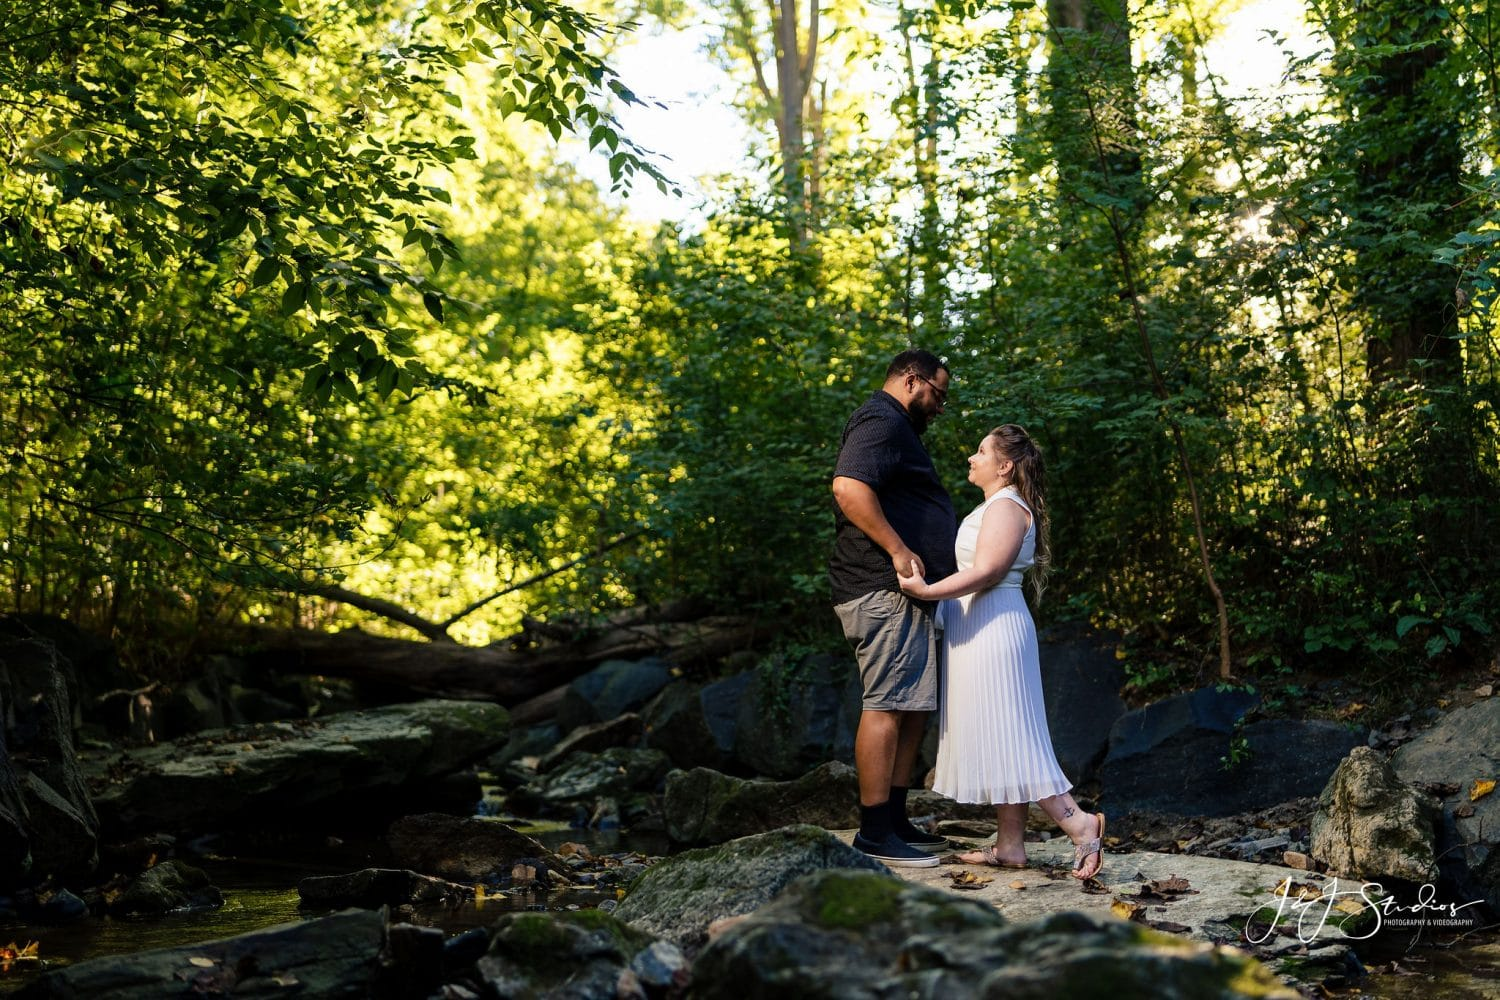 Standing in the middle of nature Forbidden Drive Engagement Shot By John Ryan